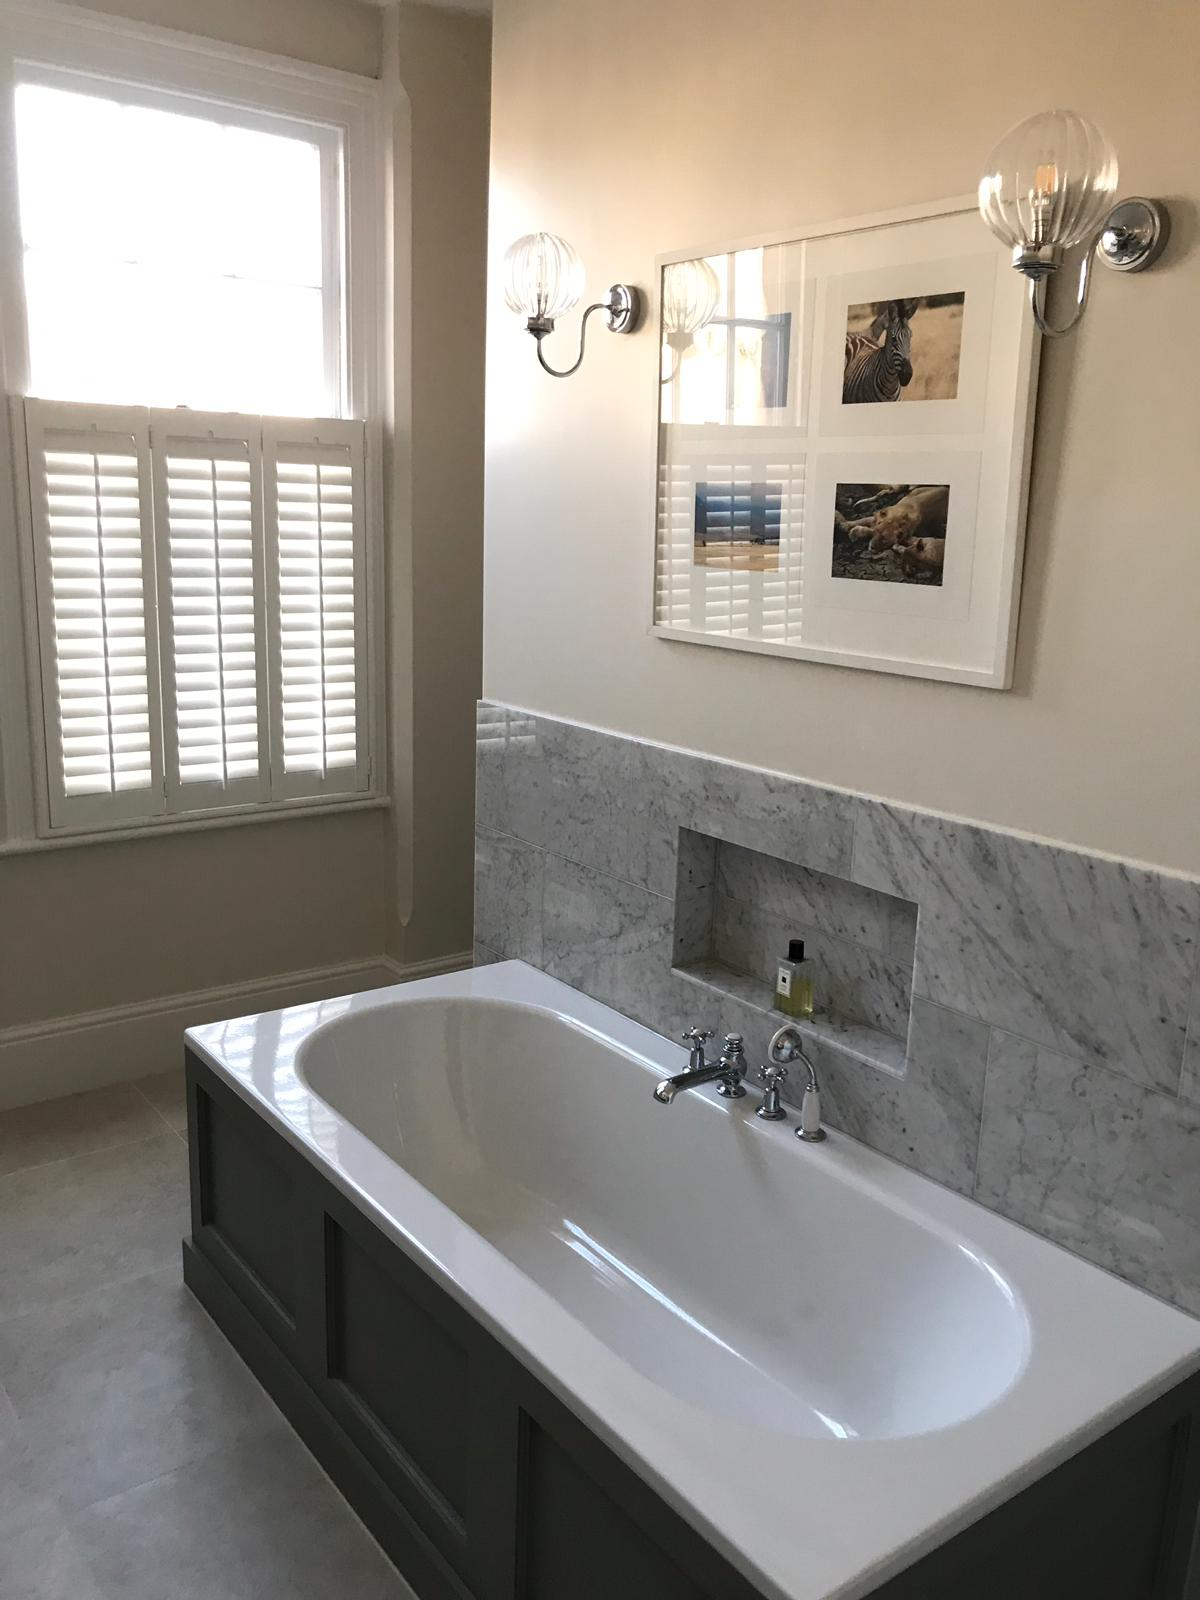 white cafe style bathroom shutters over a bathtub